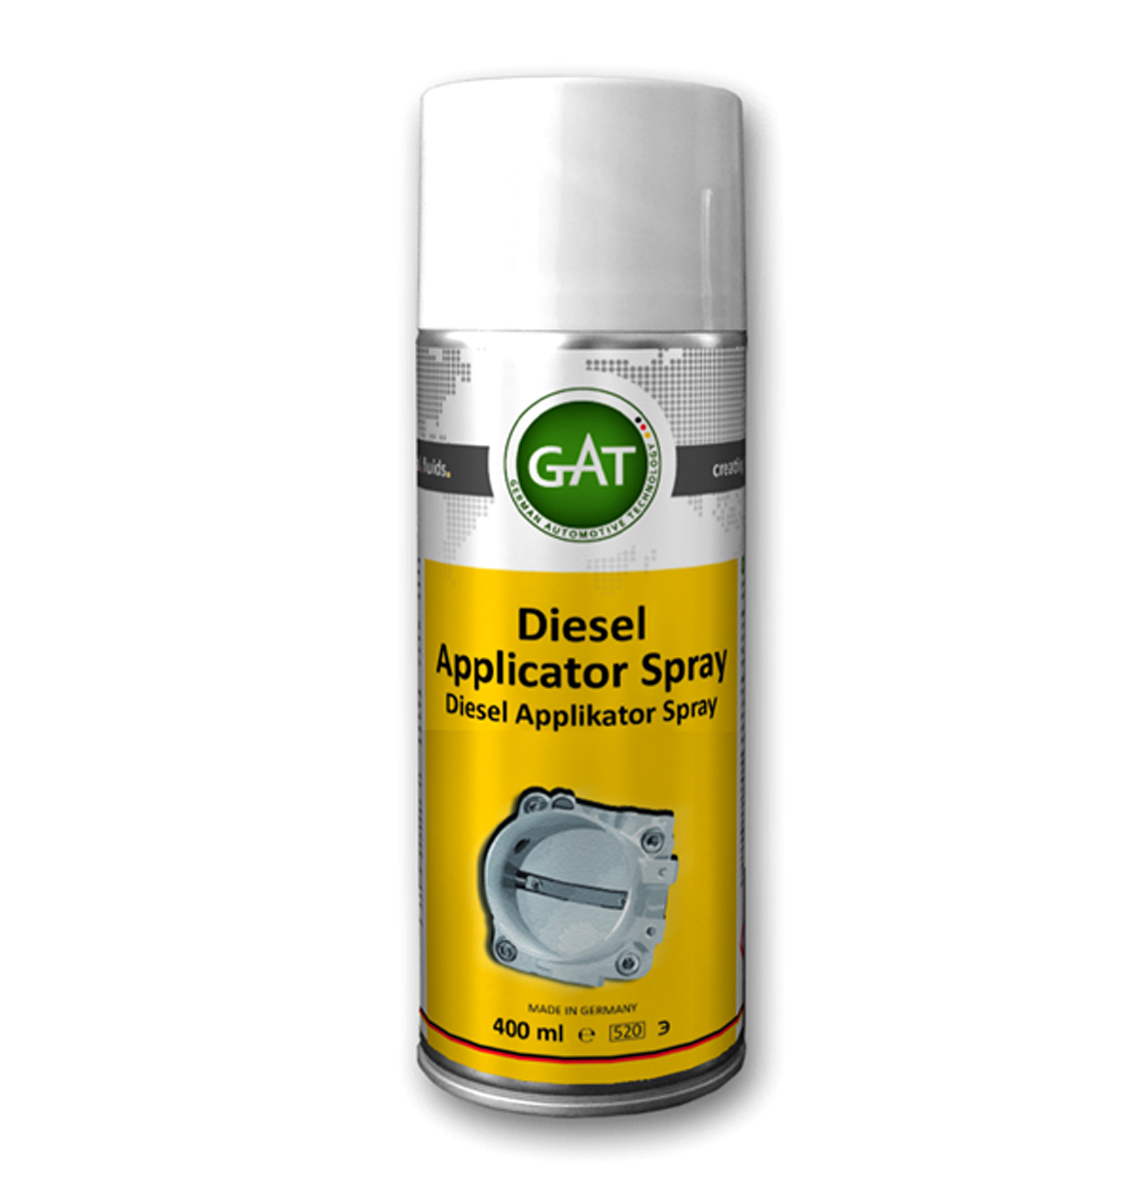 Diesel Applicator Spray 450ml